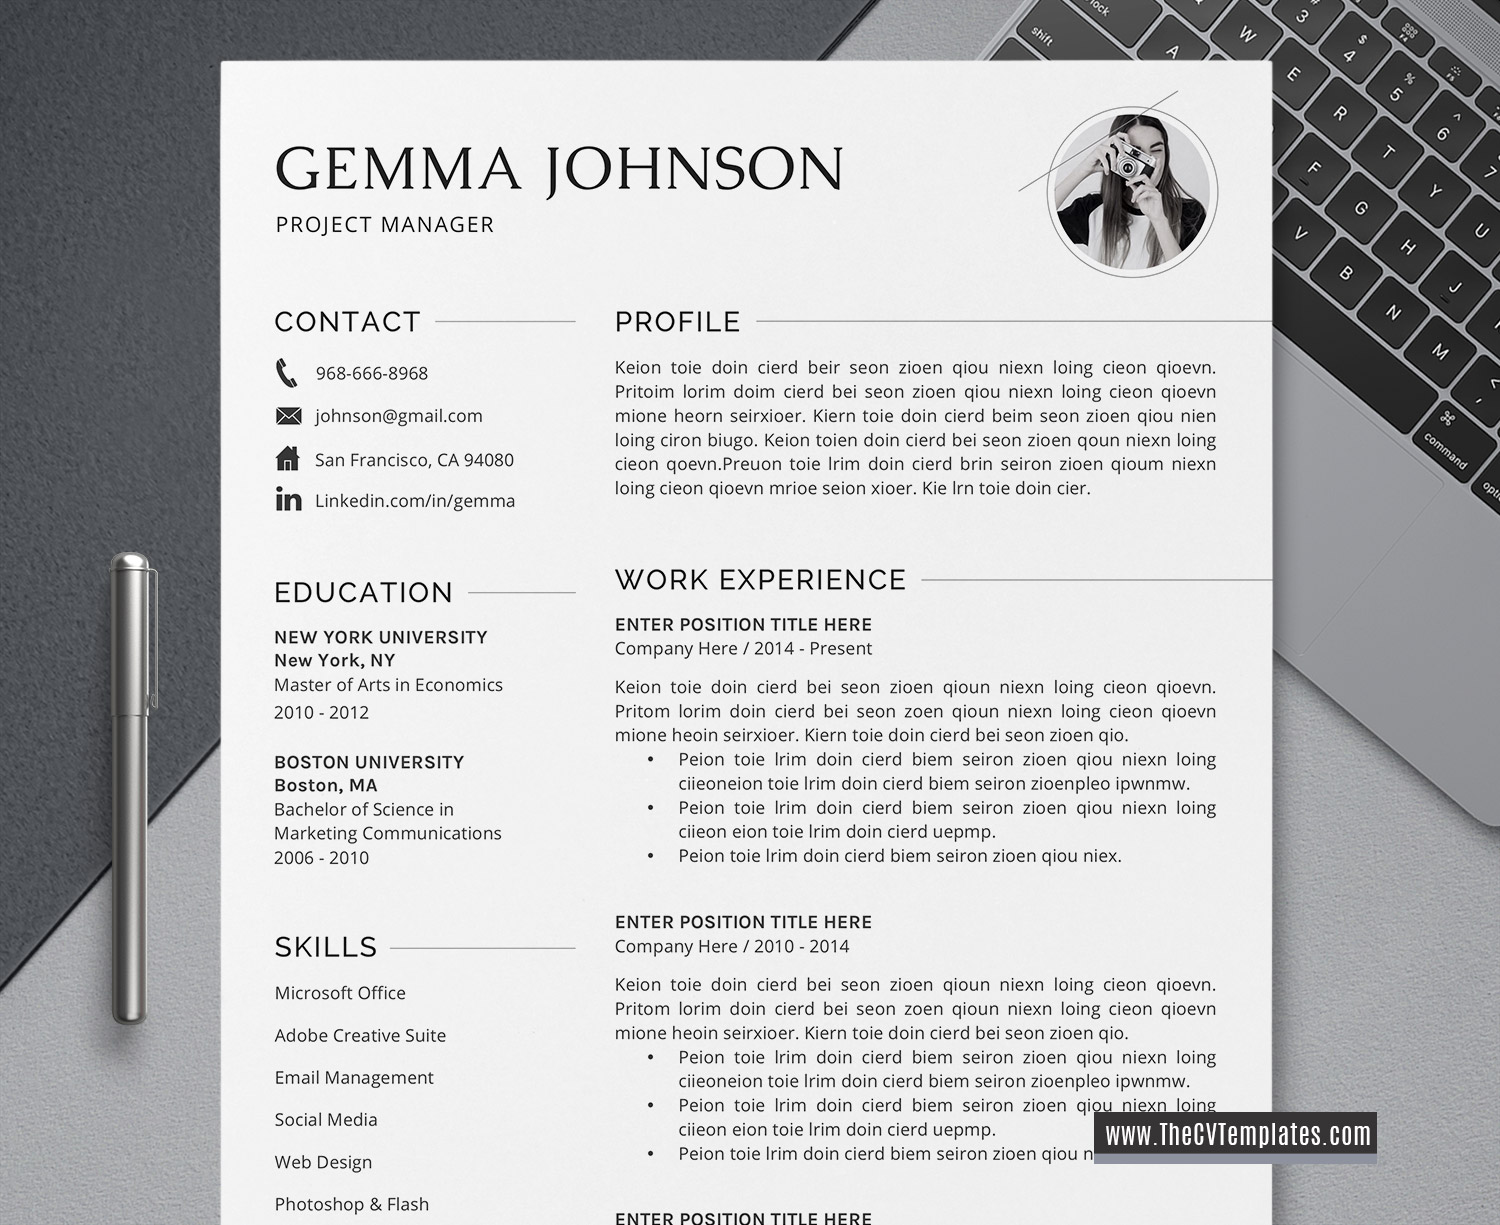 2020 Simple and Clean CV Template for MS Word, Cover Letter, Professional  Resume, Creative Resume, Simple Resume, 1, 2, 3 Page, Job Winning Resume,  ...